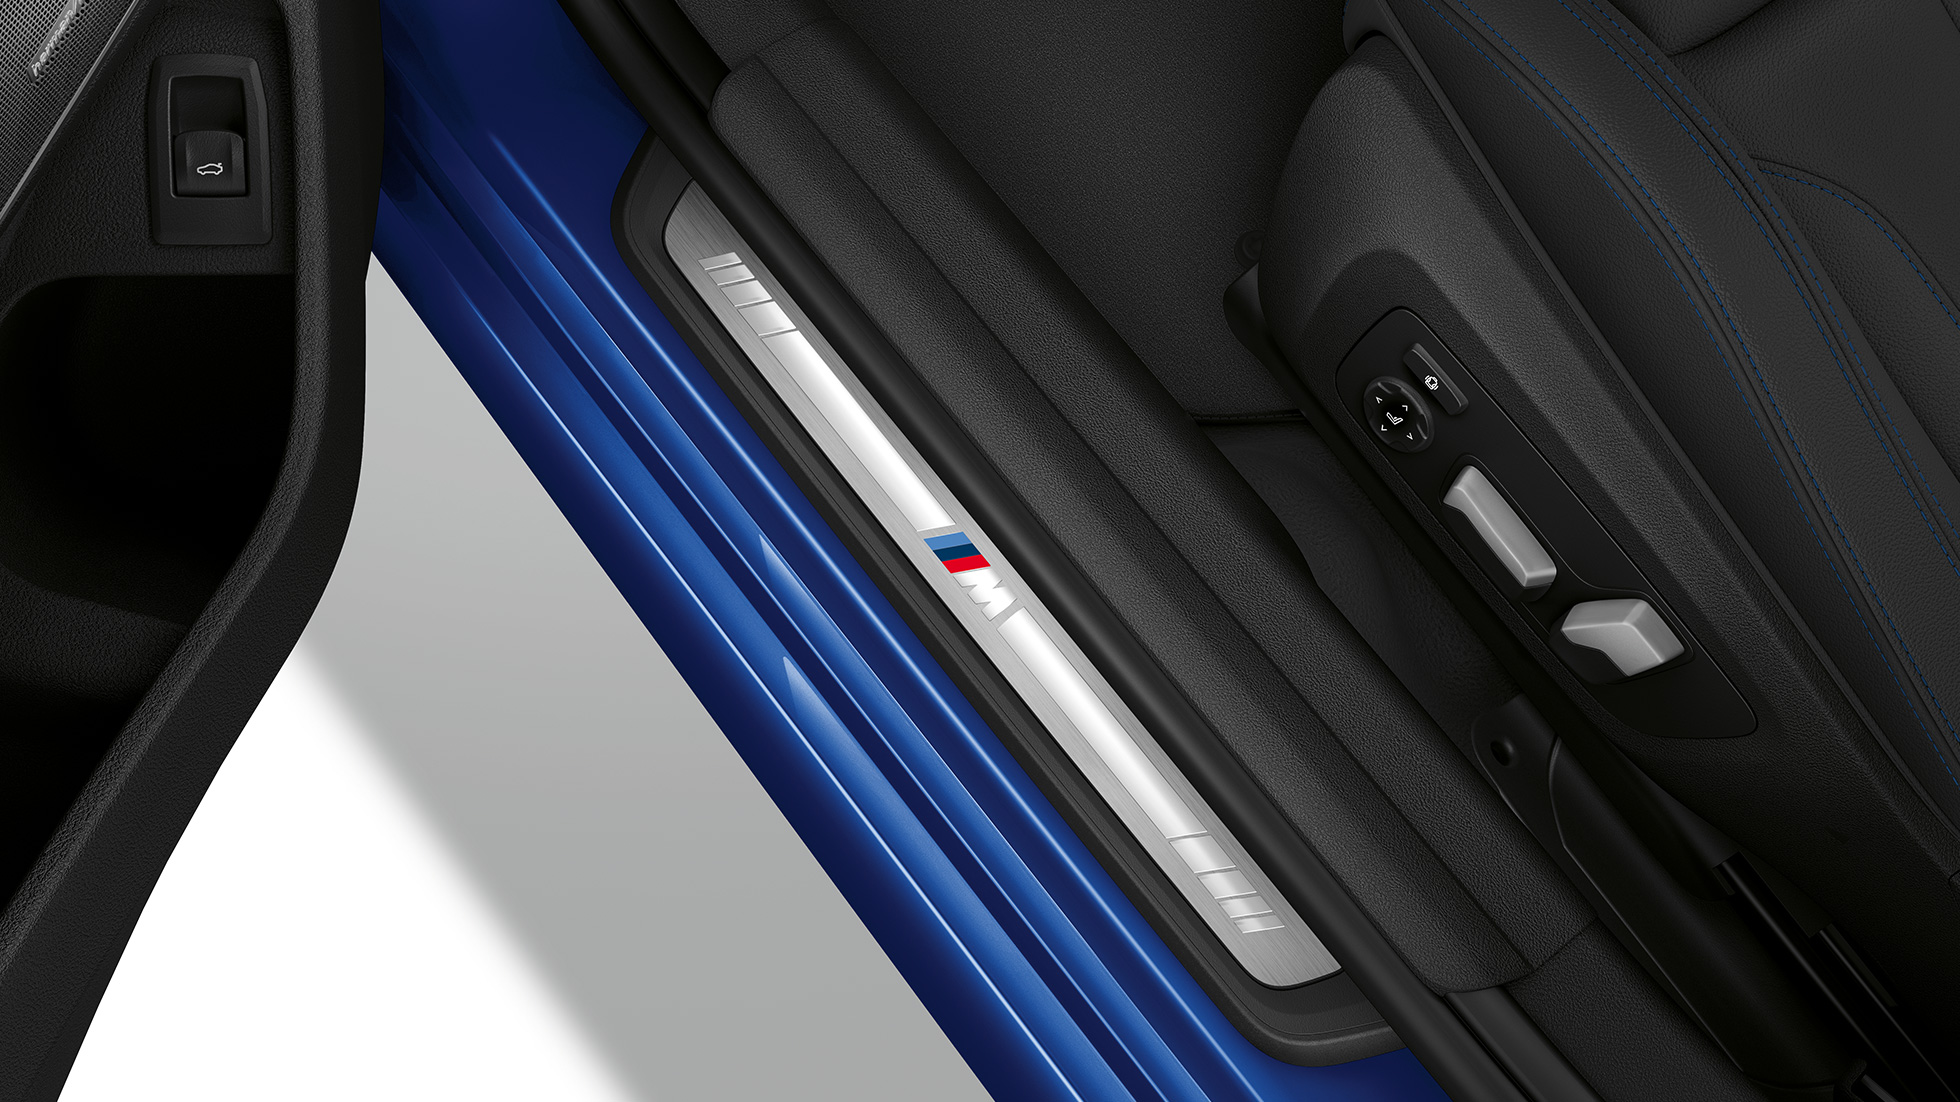 Top view of the door sill of the BMW 3 Series Saloon with Model M Sport features.